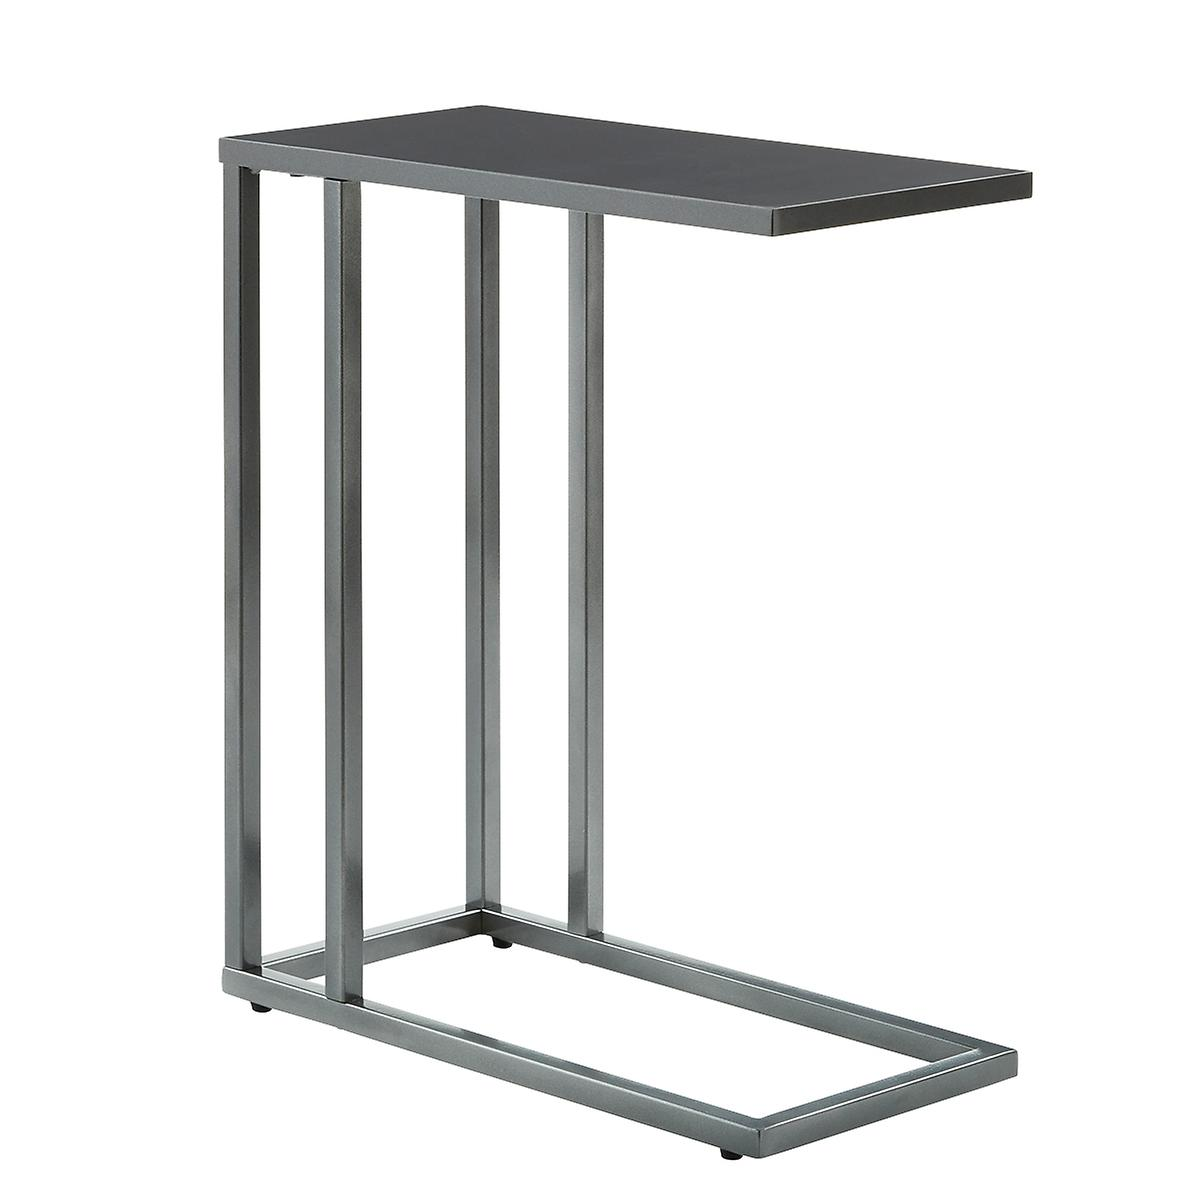 Anthracite C Table The Container Store